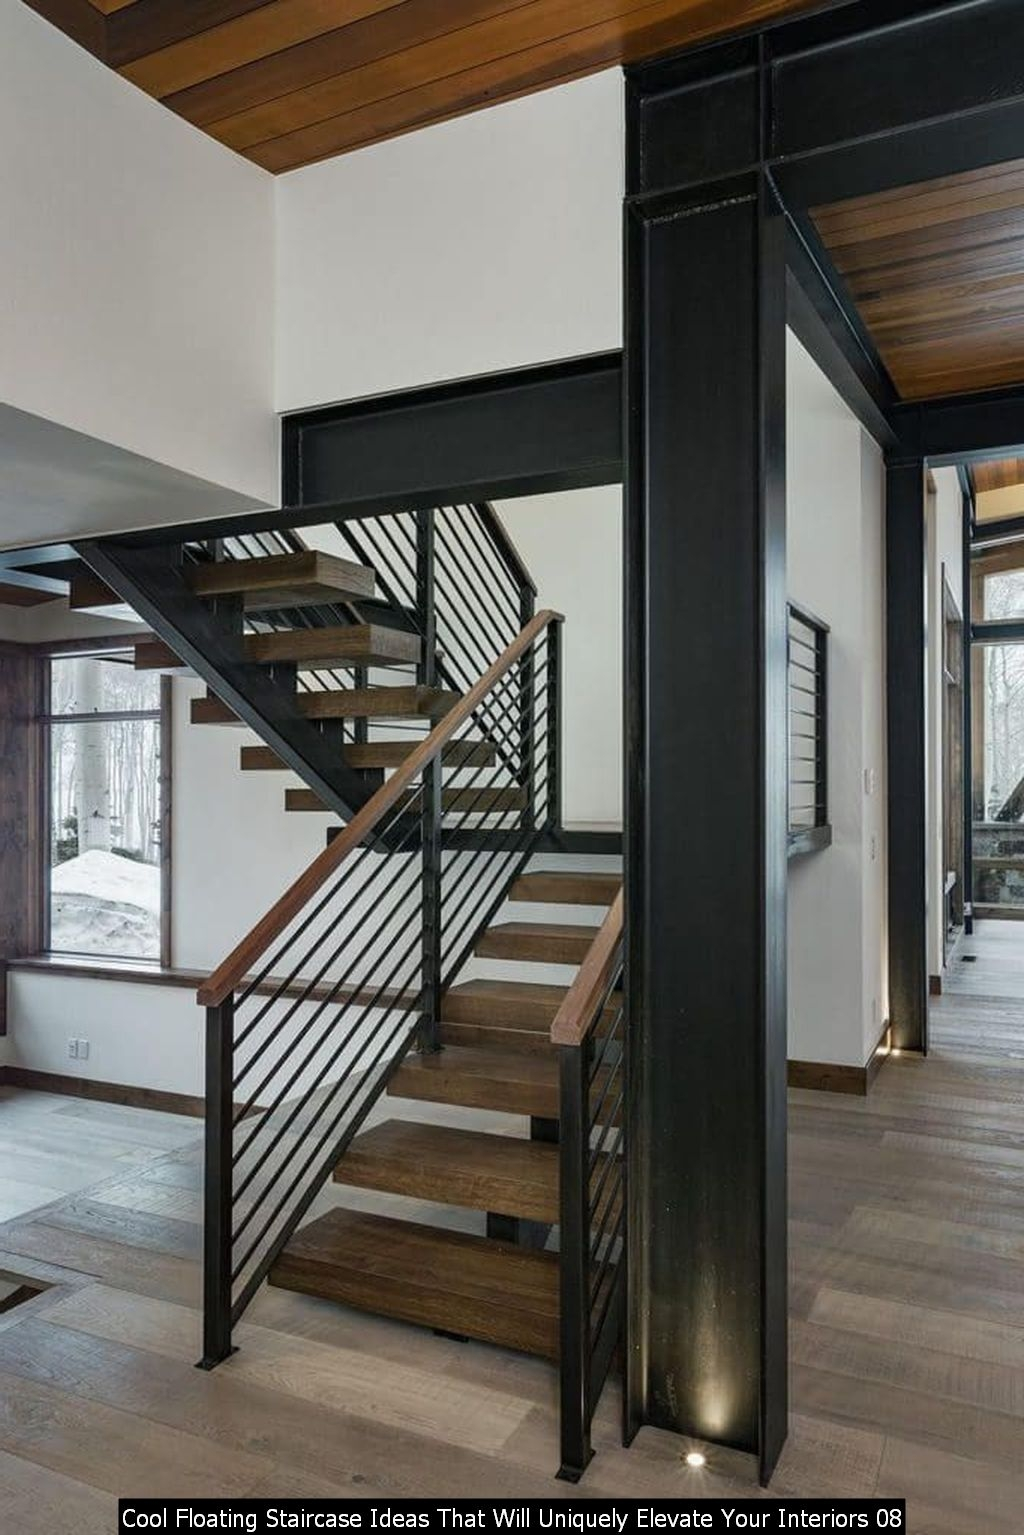 Cool Floating Staircase Ideas That Will Uniquely Elevate Your Interiors 08